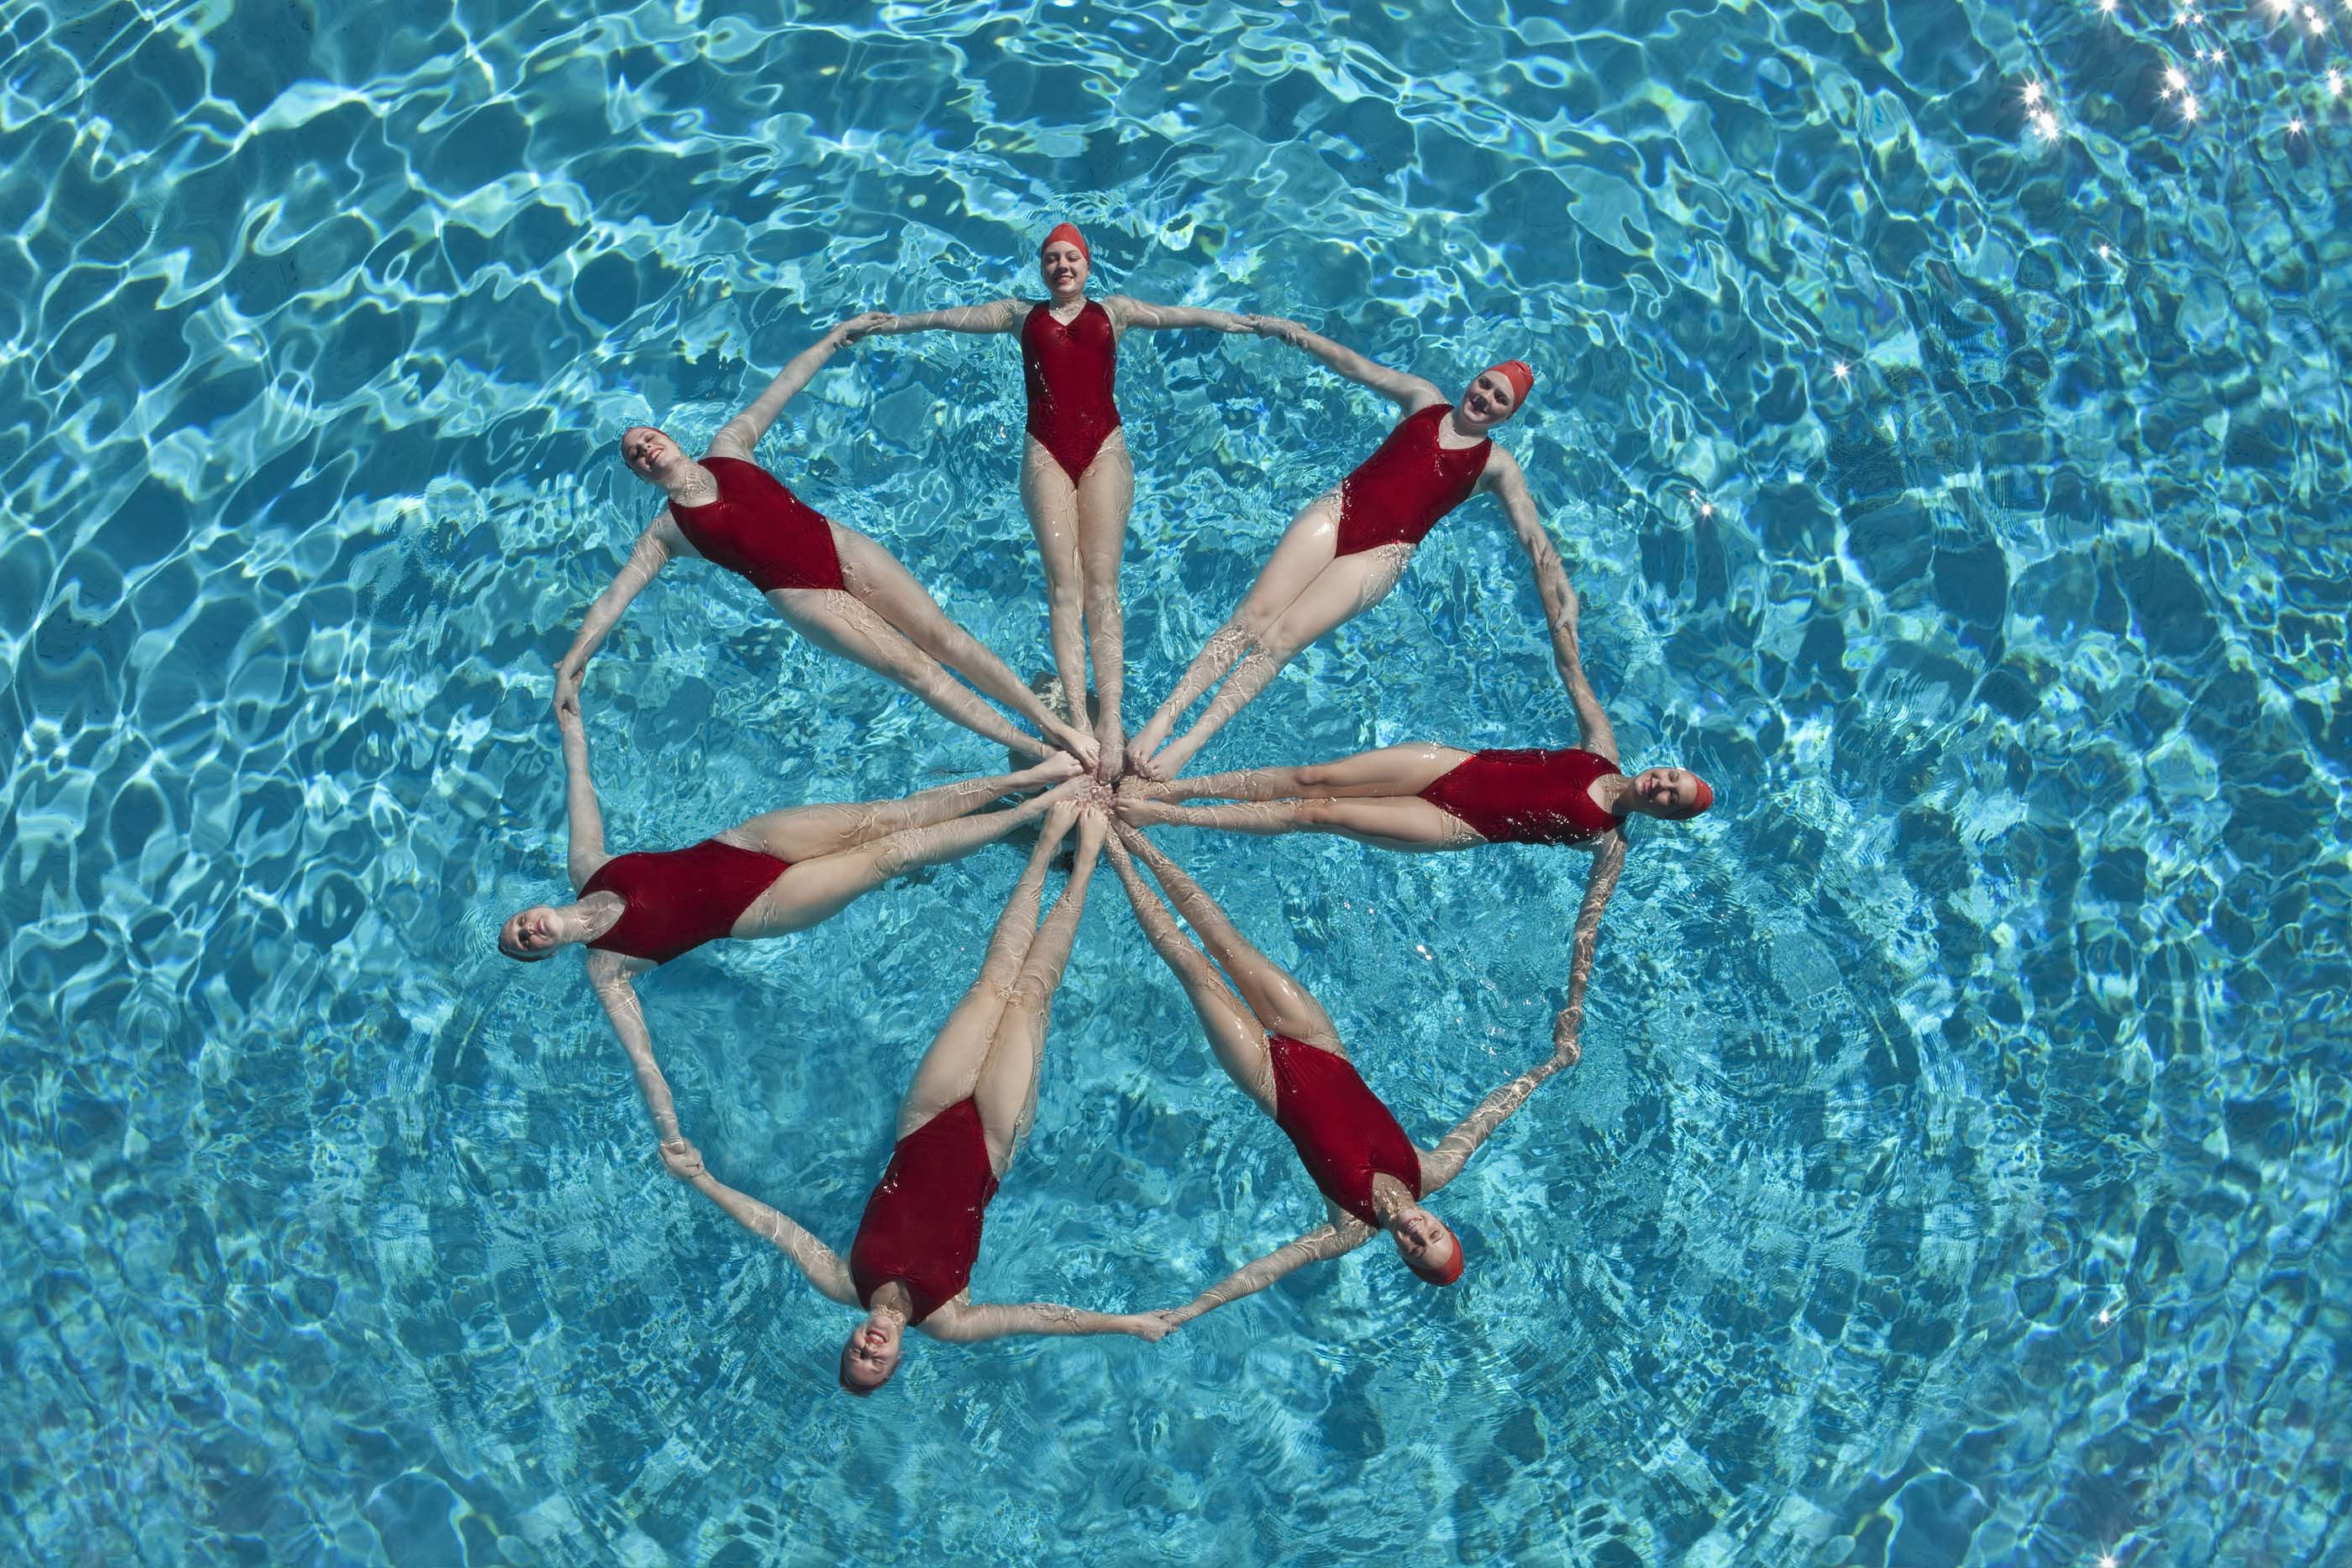 Elevated view of synchronised swimmers forming a circle in pool